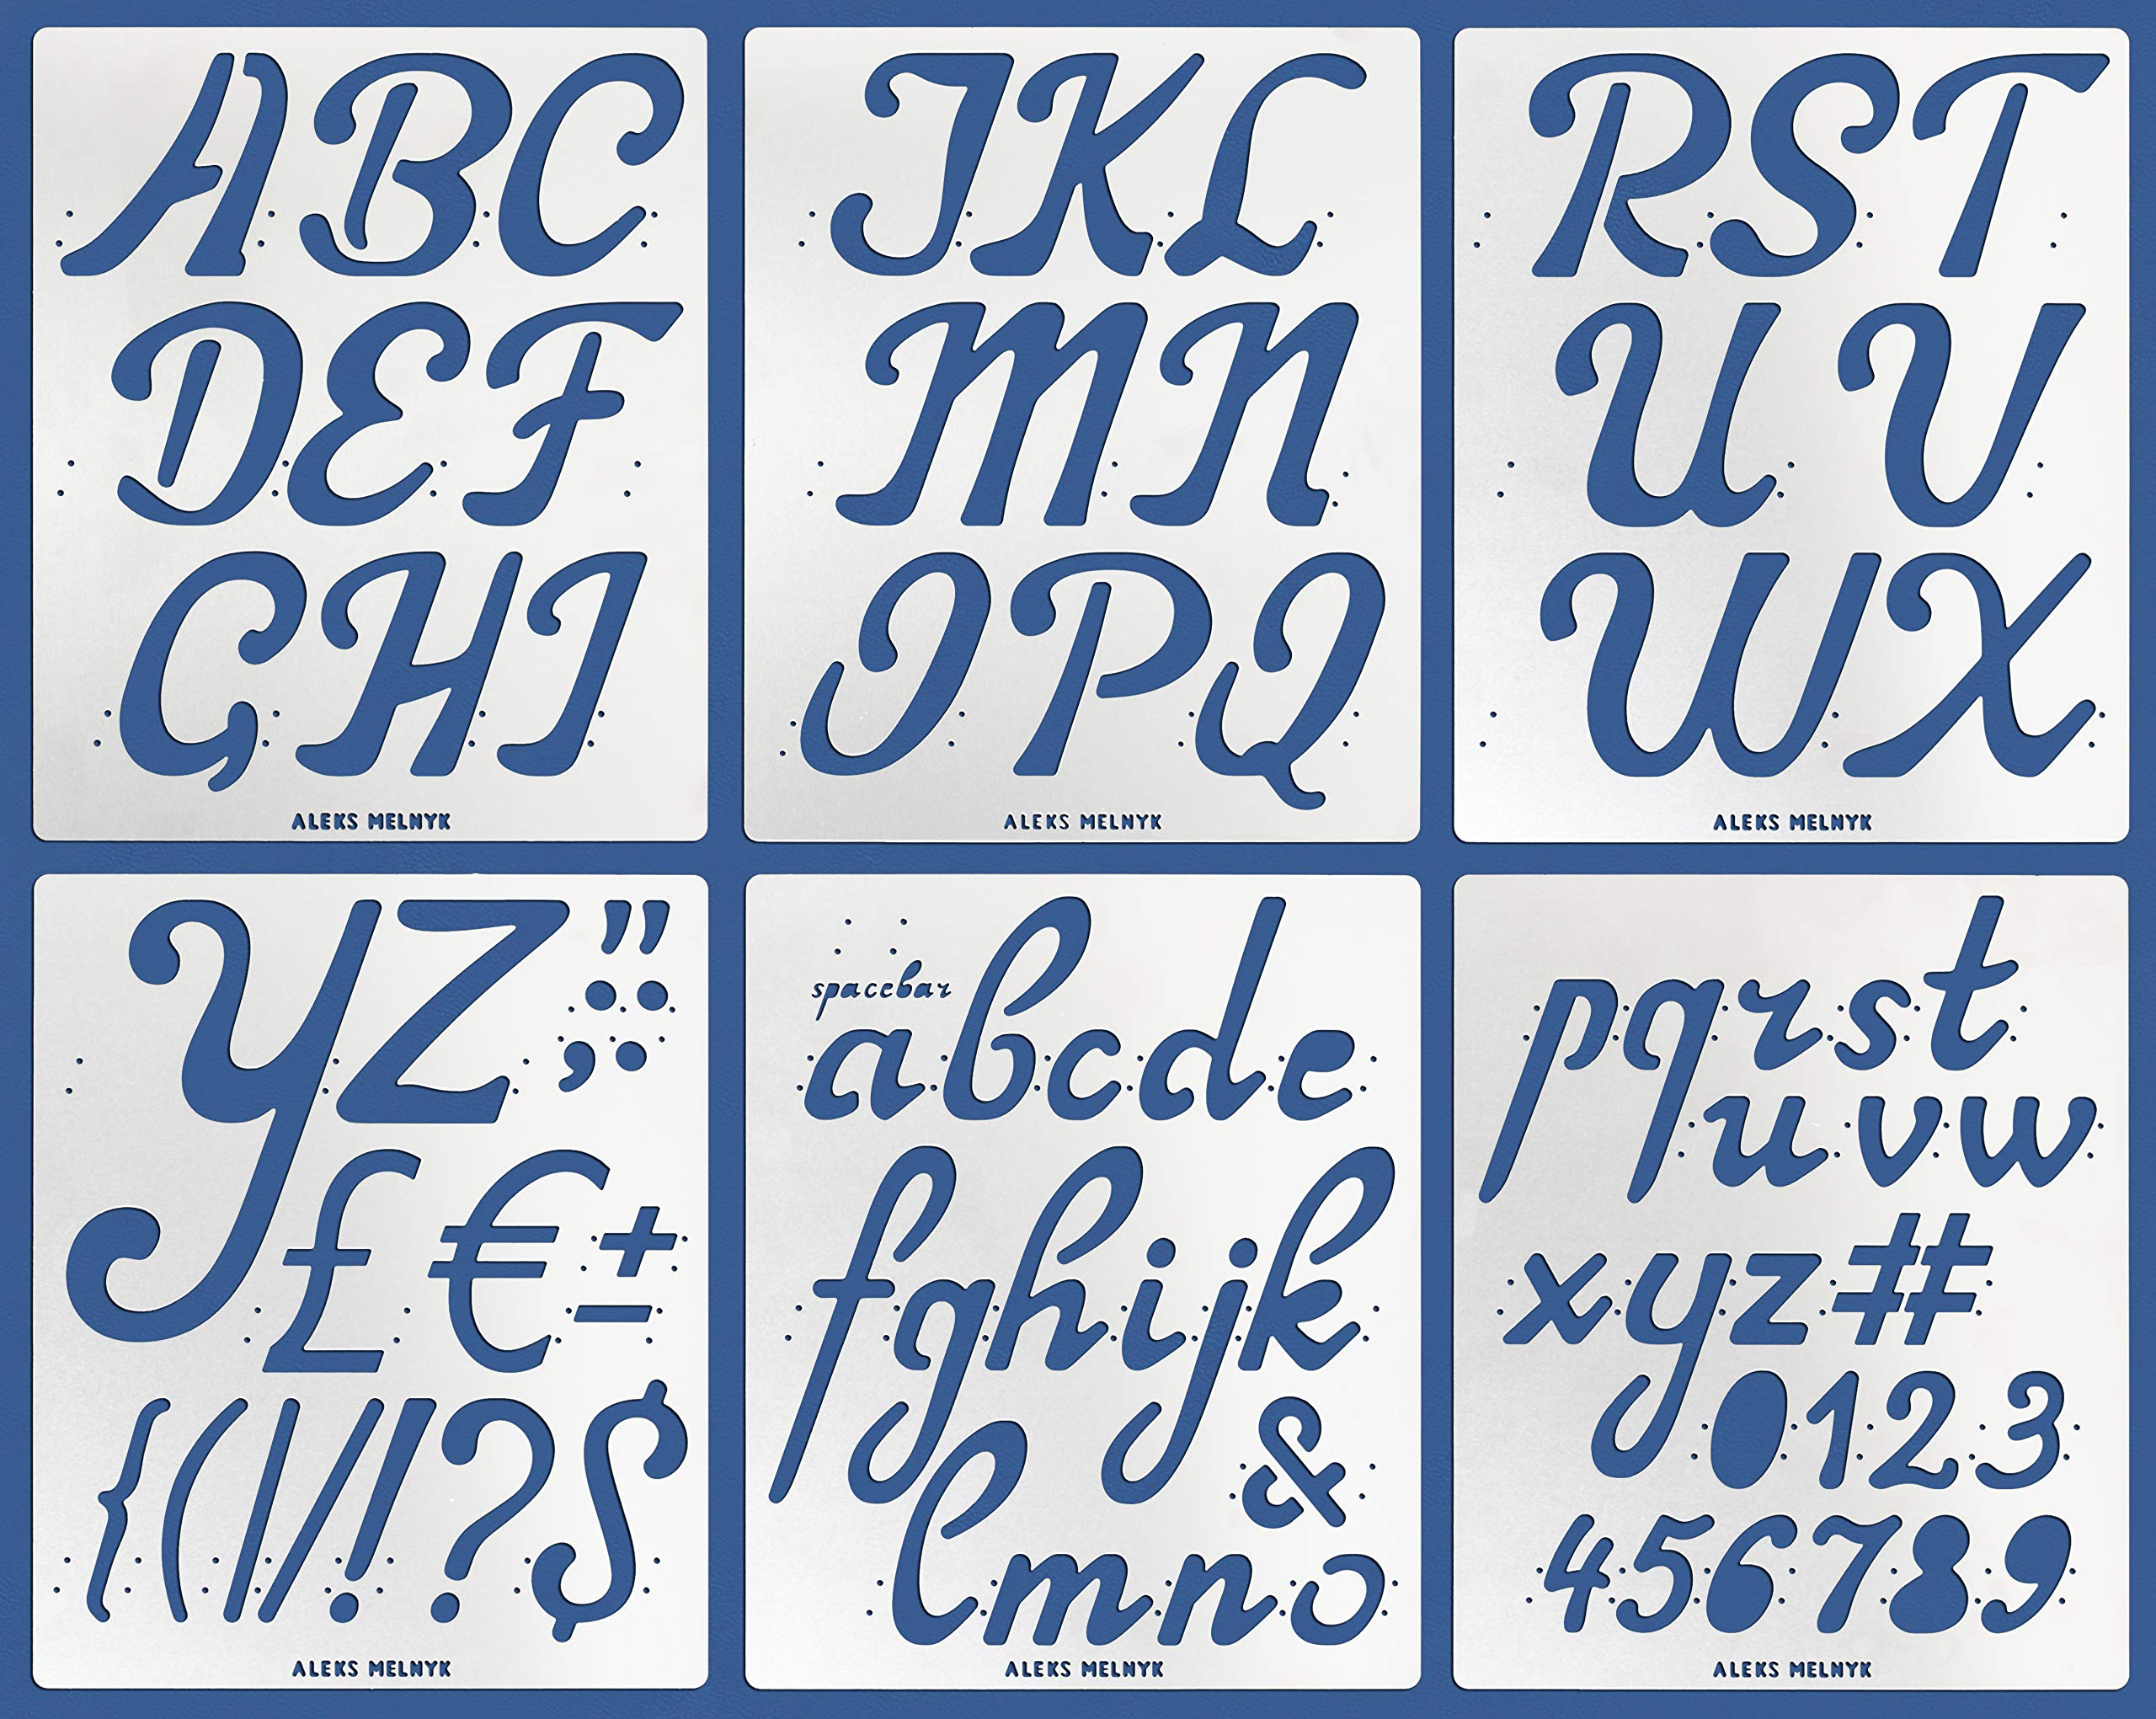 Aleks Melnyk #41 Metal Journal Stencils/Alphabet Letter Number, ABC - 2 inch/Stainless Steel Stencils Kit 6 PCS/Templates Tool for Wood Burning, Pyrography and Engraving/Scrapbooking/Crafting/DIY